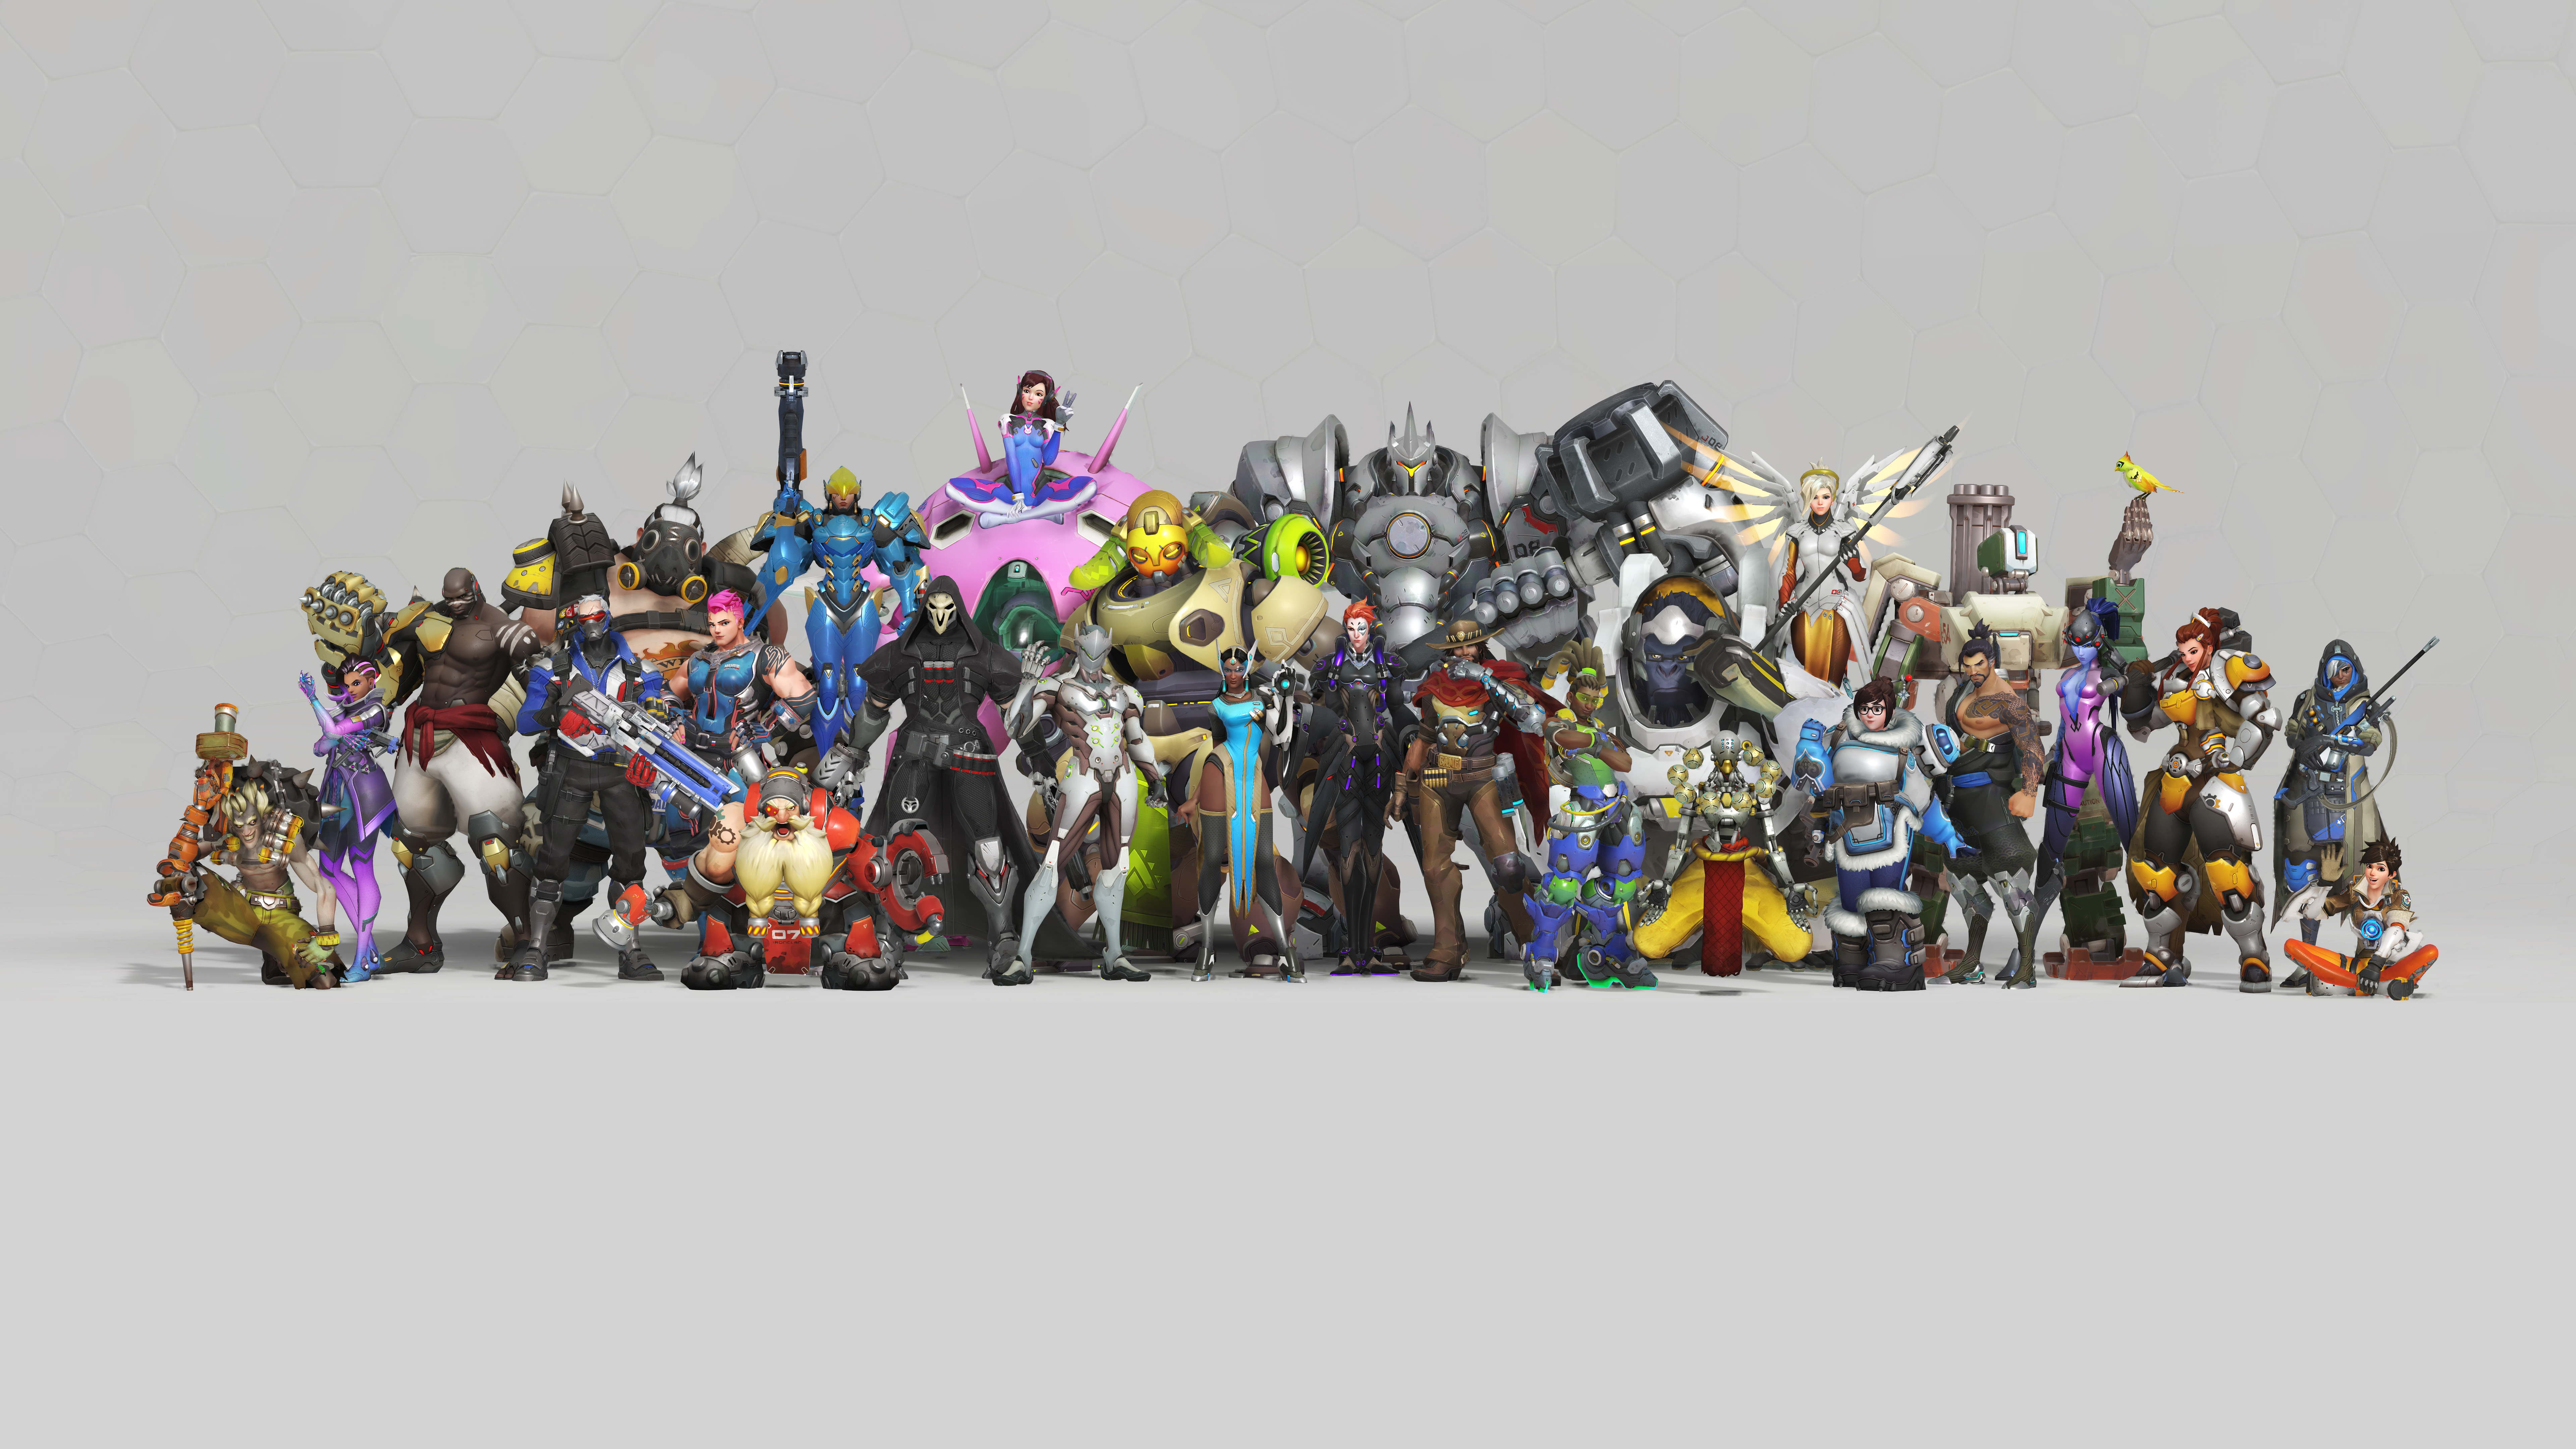 7680x4320 Overwatch Anniversary 8k 8k Hd 4k Wallpapers Images